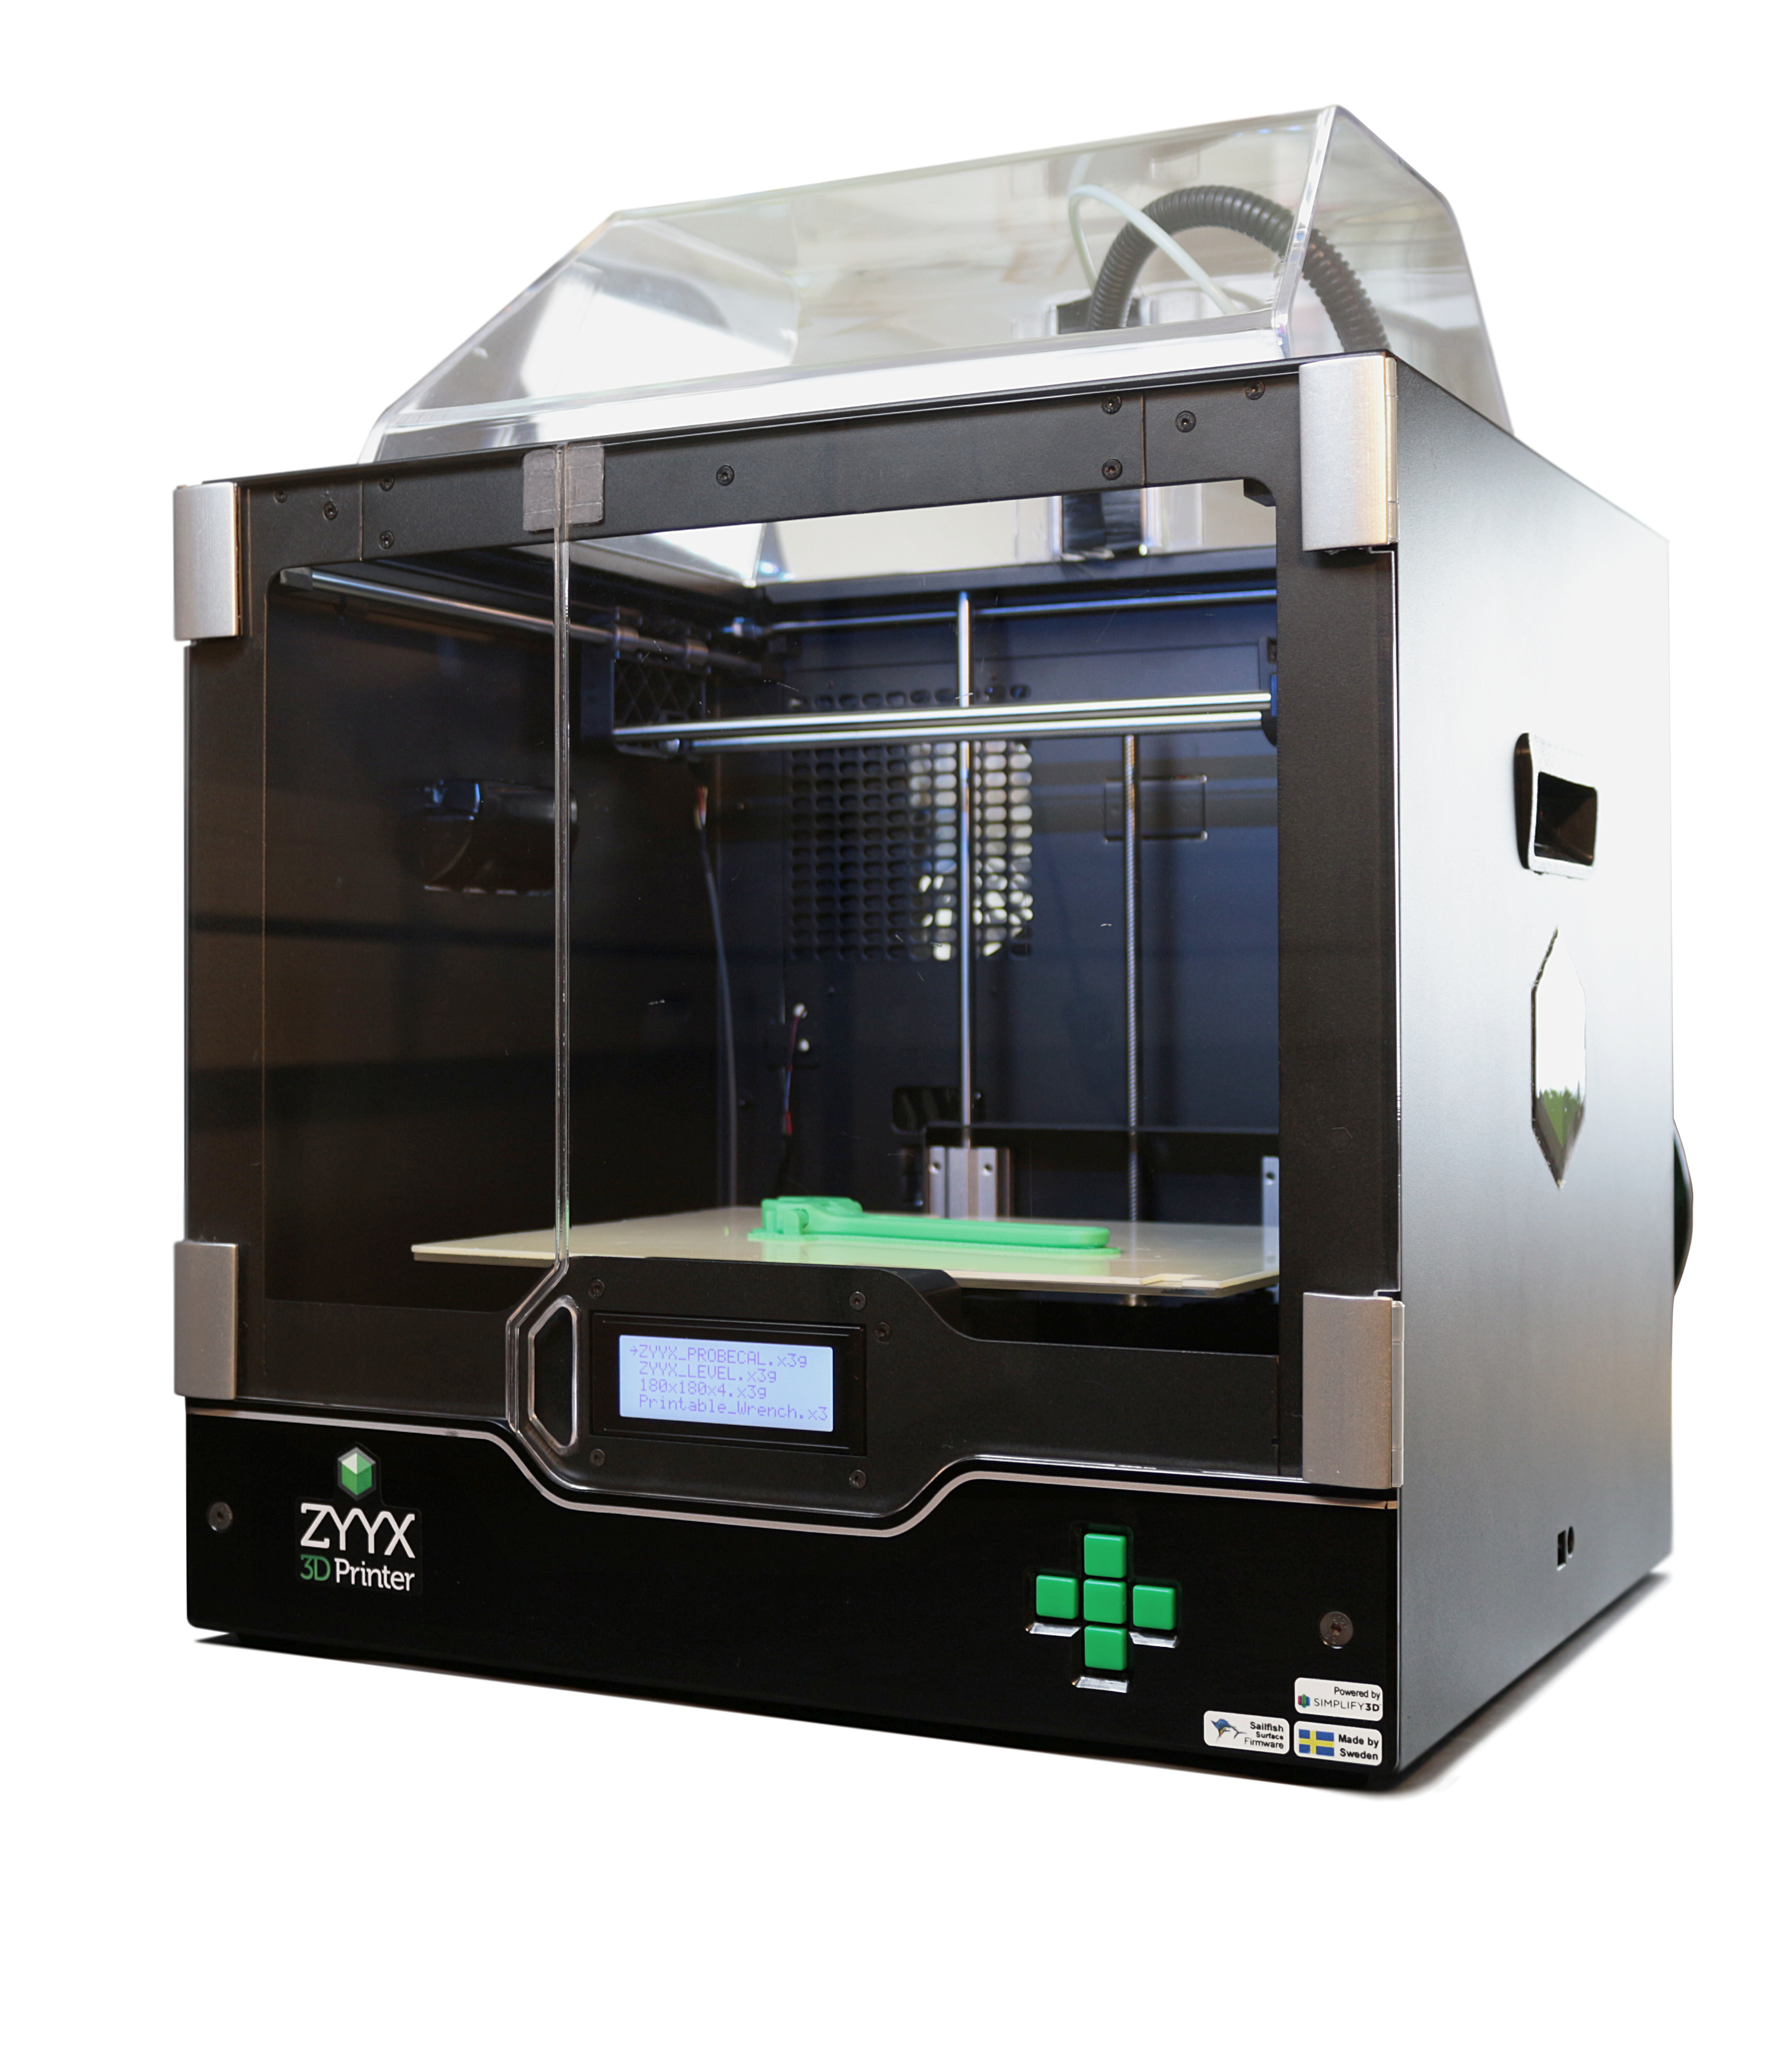 Press Zyyx 3d Printer Professional 3d Printers